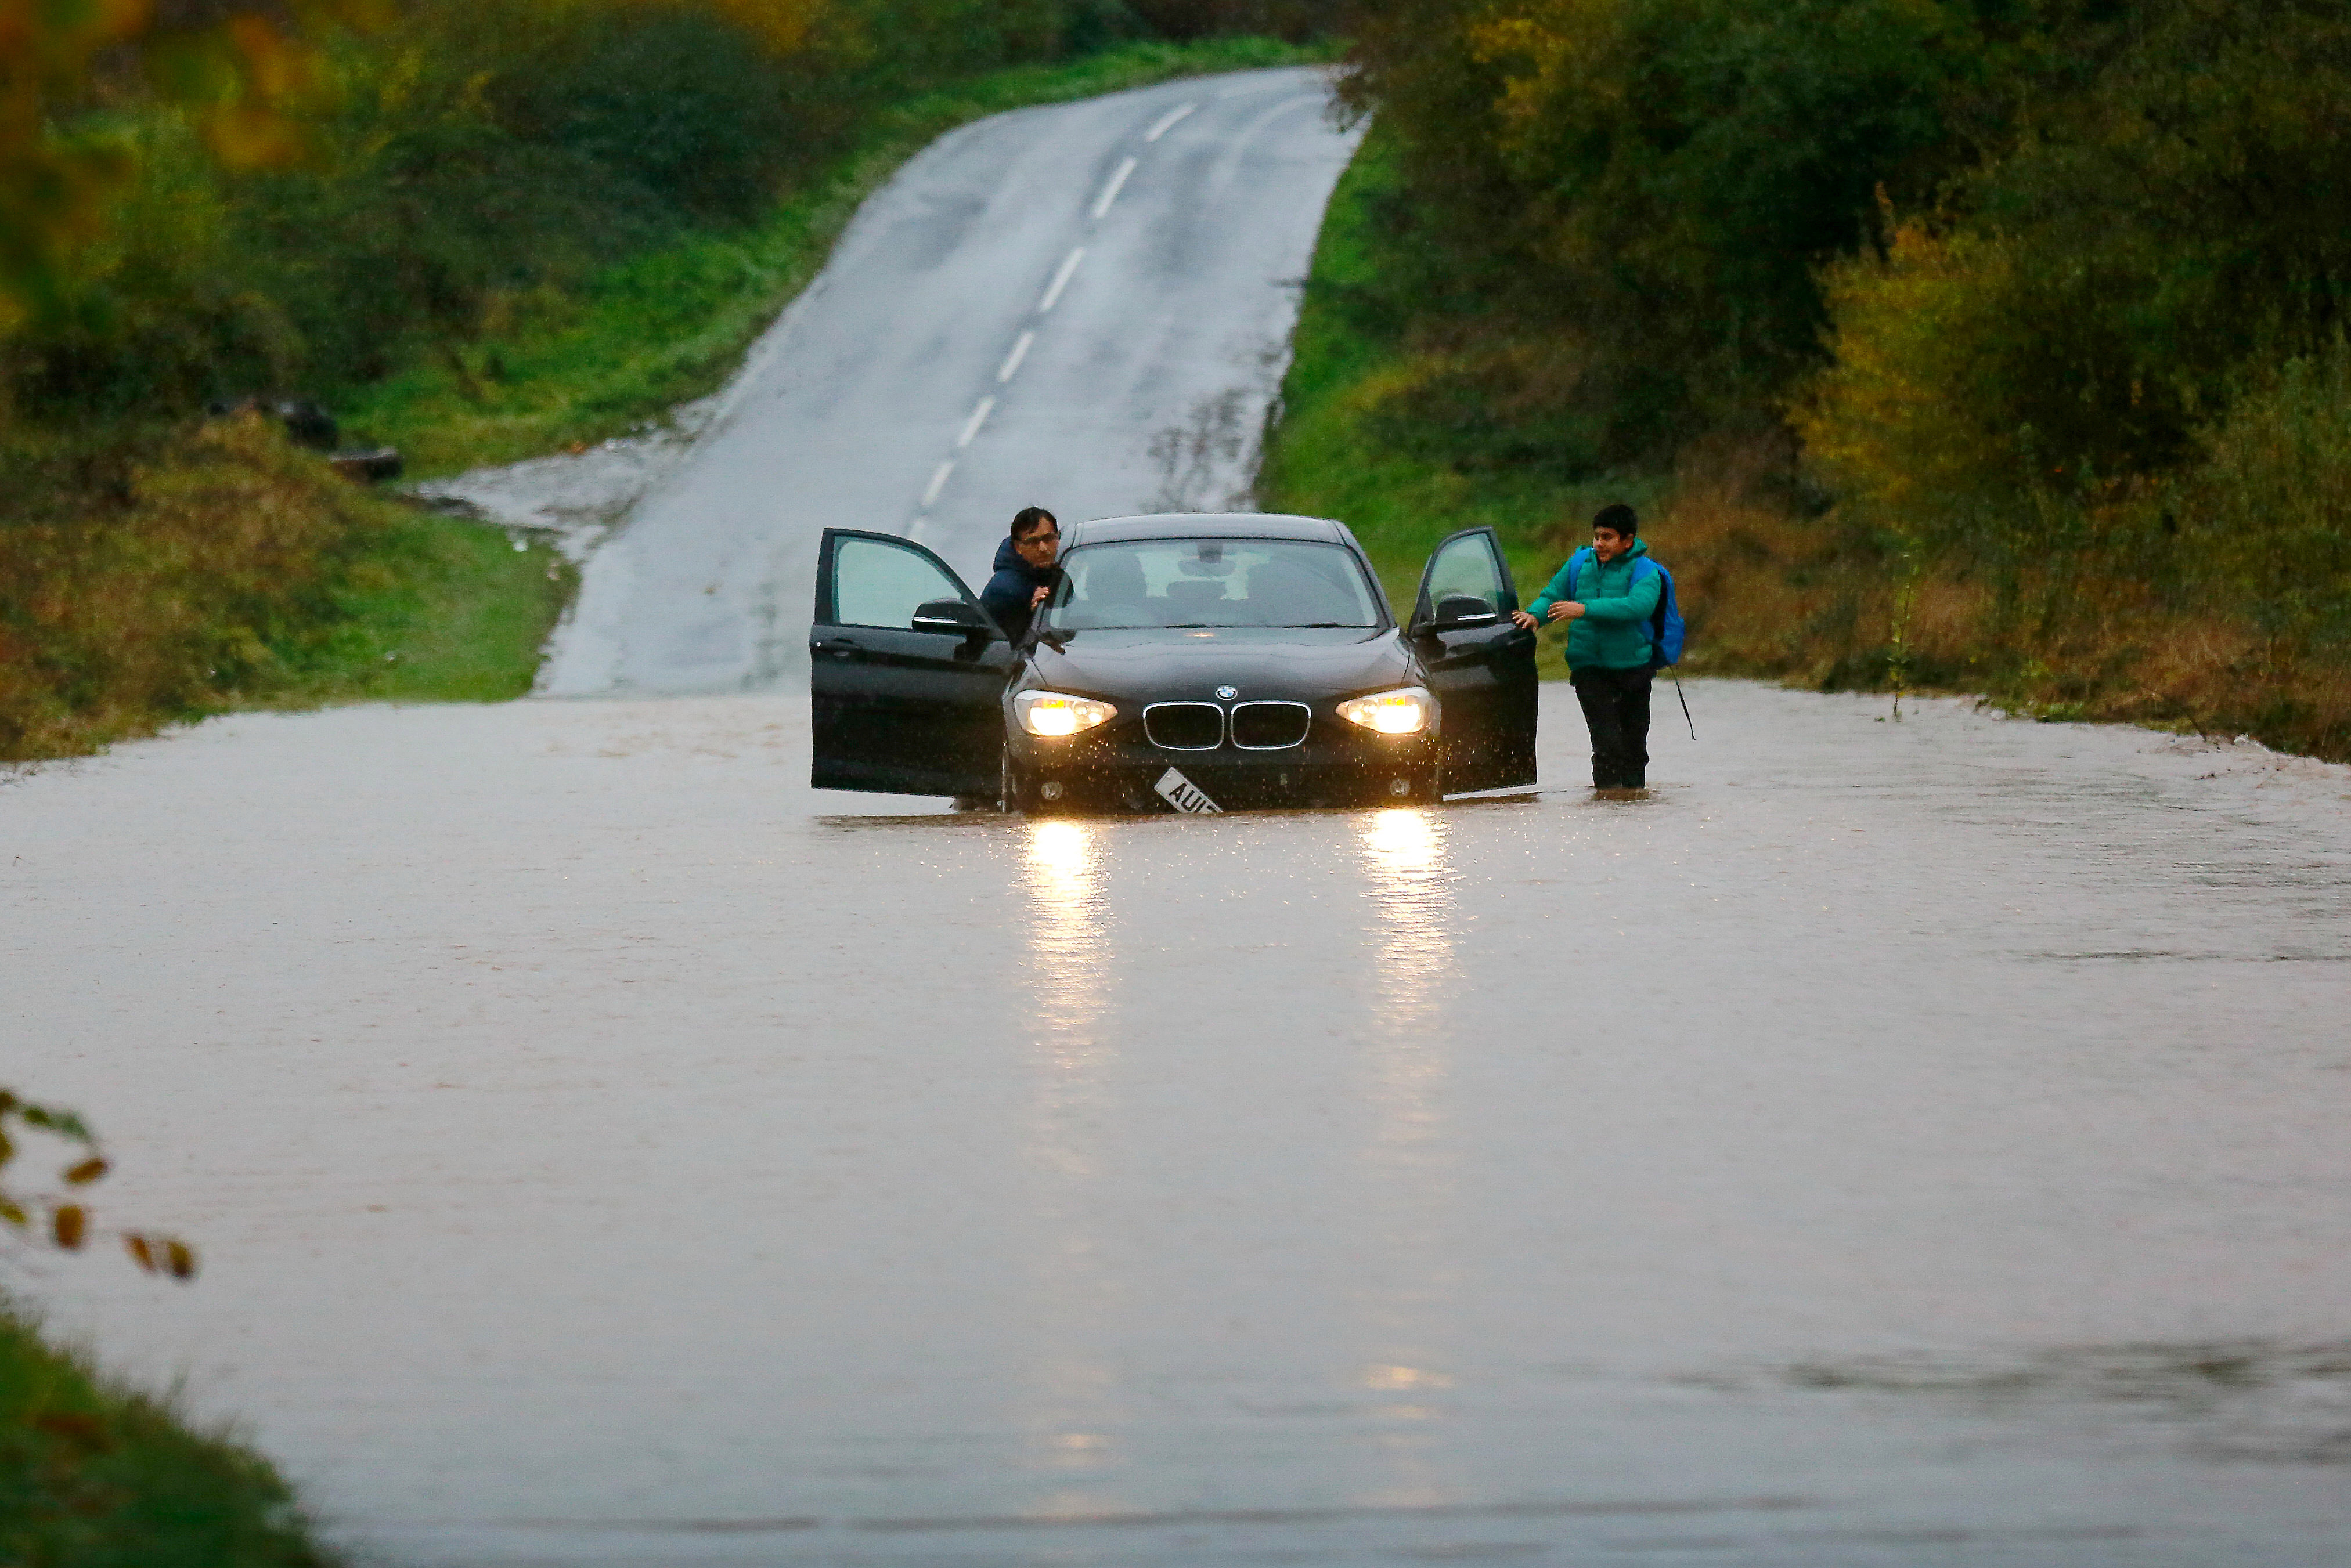 UK flooding: The UK has been lashed with biblical downpours, causing travel chaos